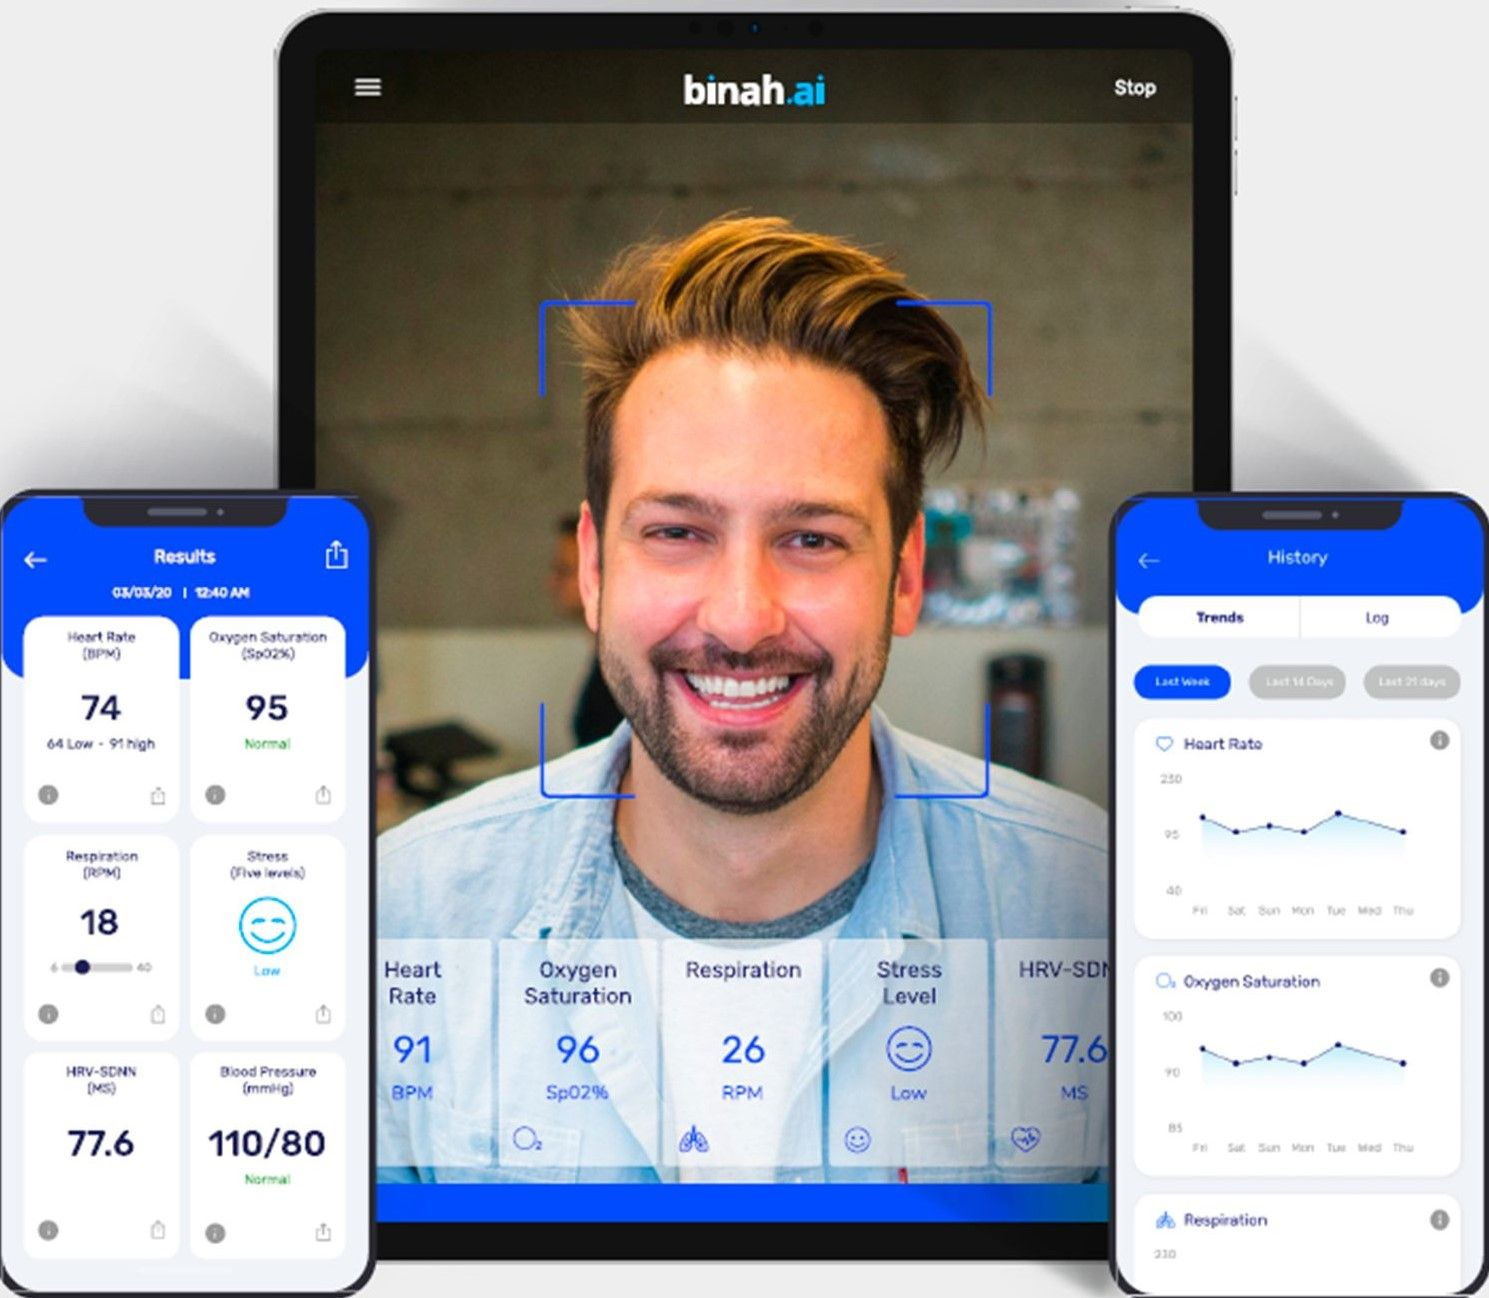 Duckface can save lives: Binah.ai raises $13.5M to monitor health condition through selfies